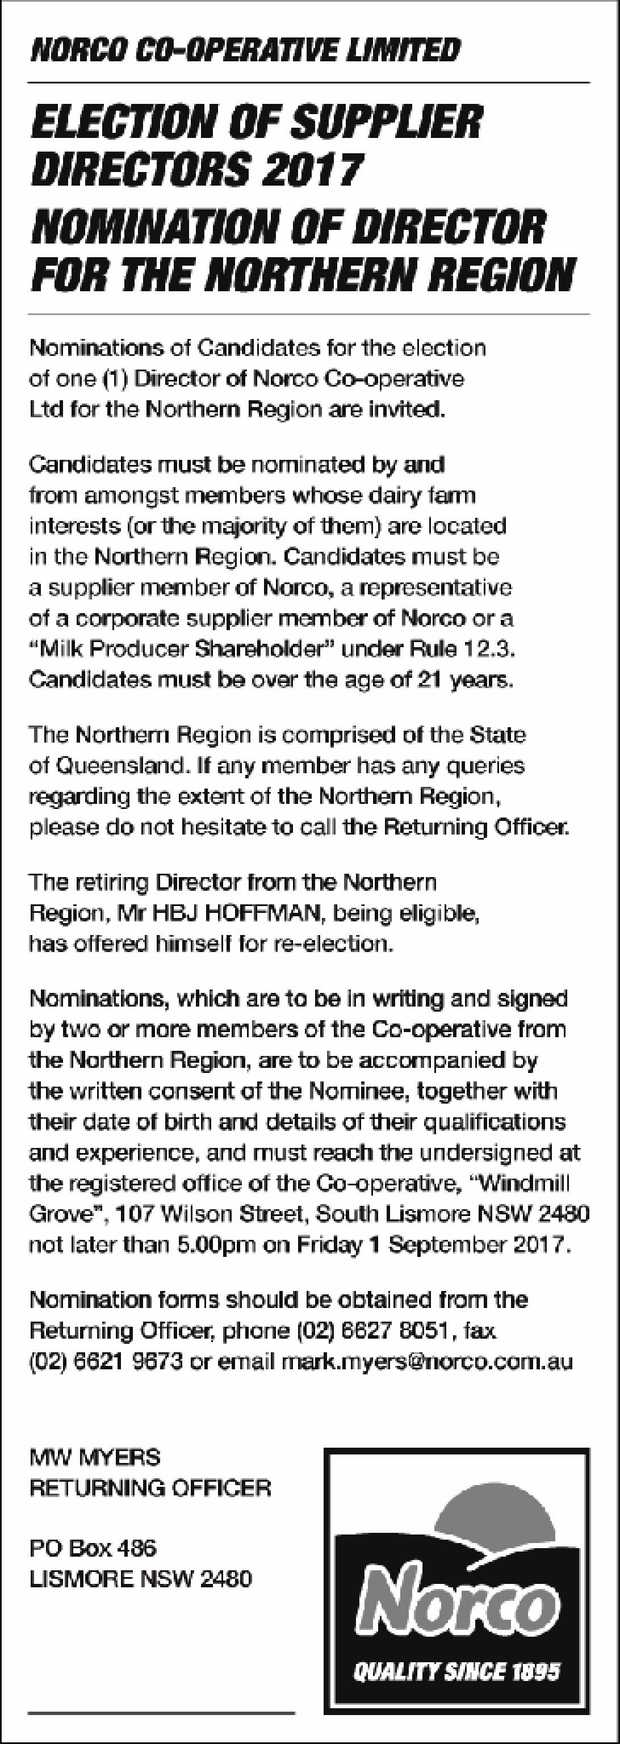 NORCO CO-OPERATIVE LIMITED ELECTION OF SUPPLIER DIRECTORS 2017 NOMINATION OF DIRECTOR FOR THE NOR...